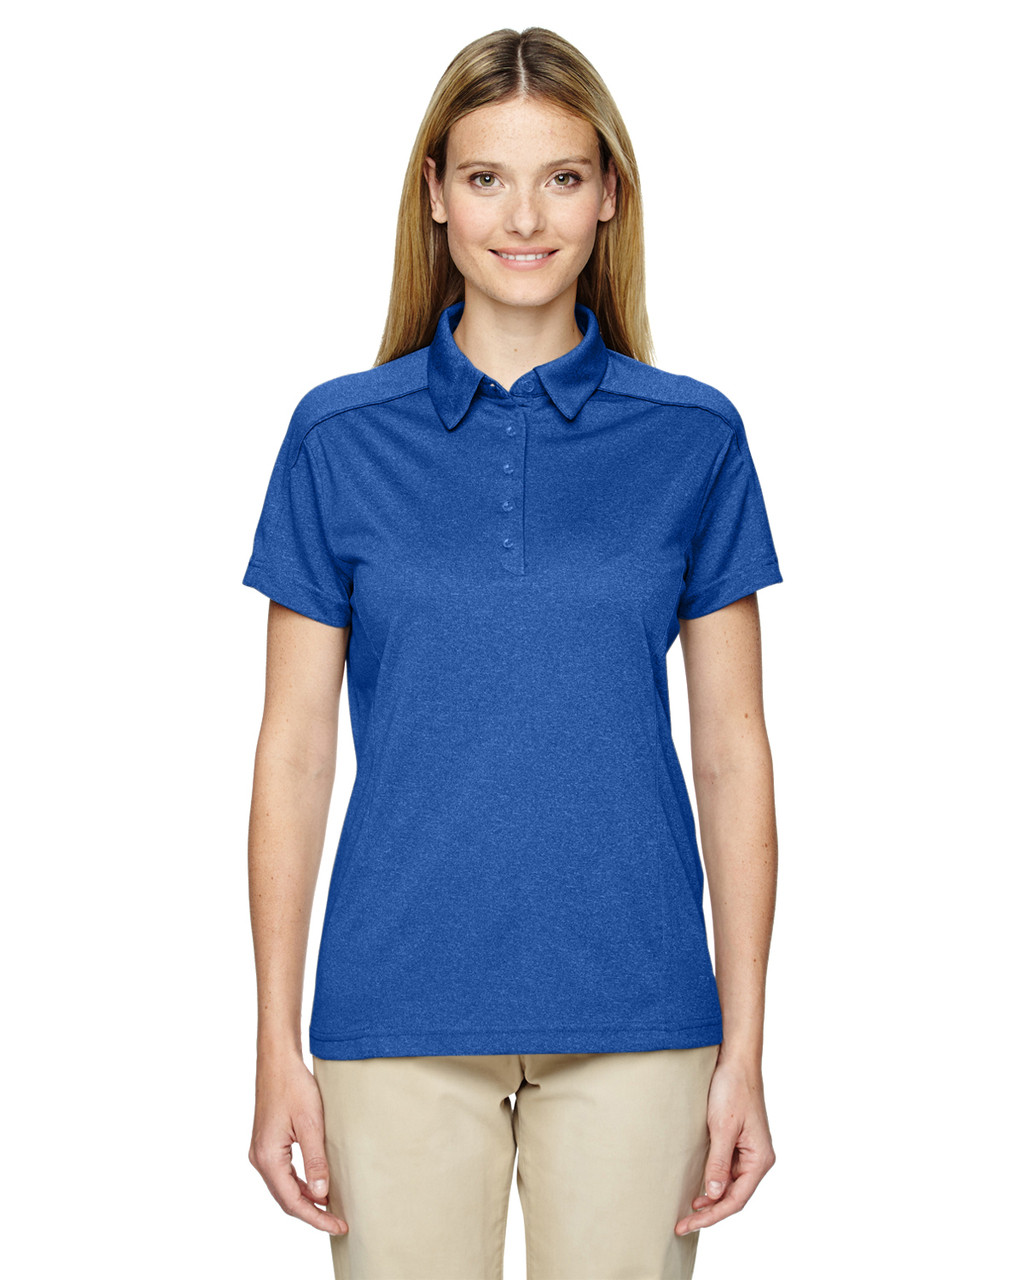 Nauticl Blue 75117 Ash City - Extreme Eperformance Mélange Polo Shirt